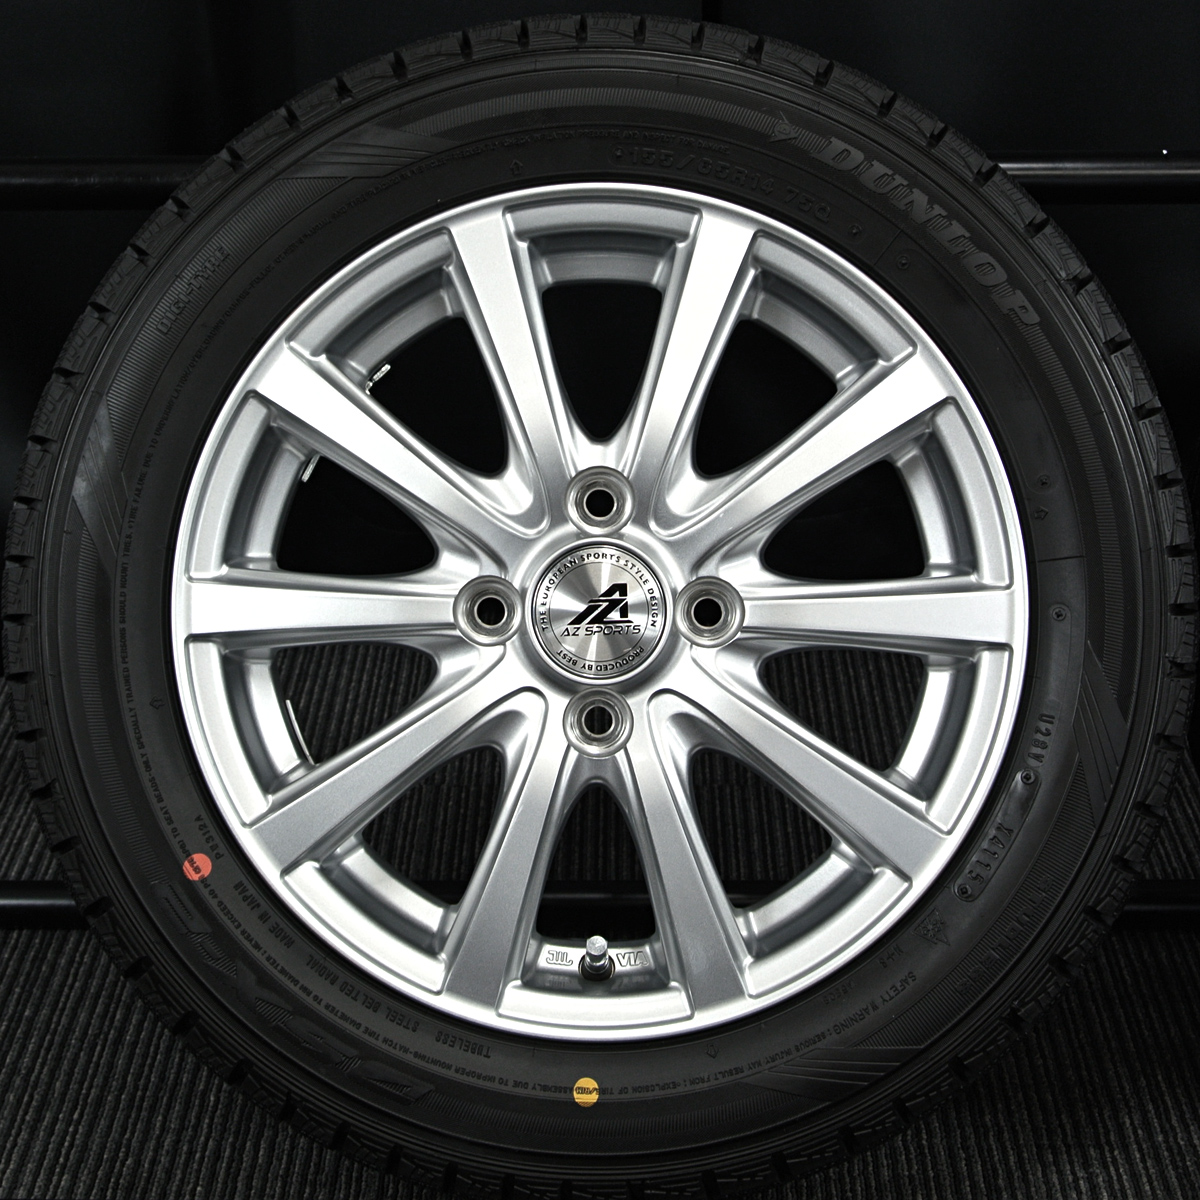 INTER MILANO AZ-SPORTS SY-10 シルバー DUNLOP DSX-2 155/65R14 4本SET